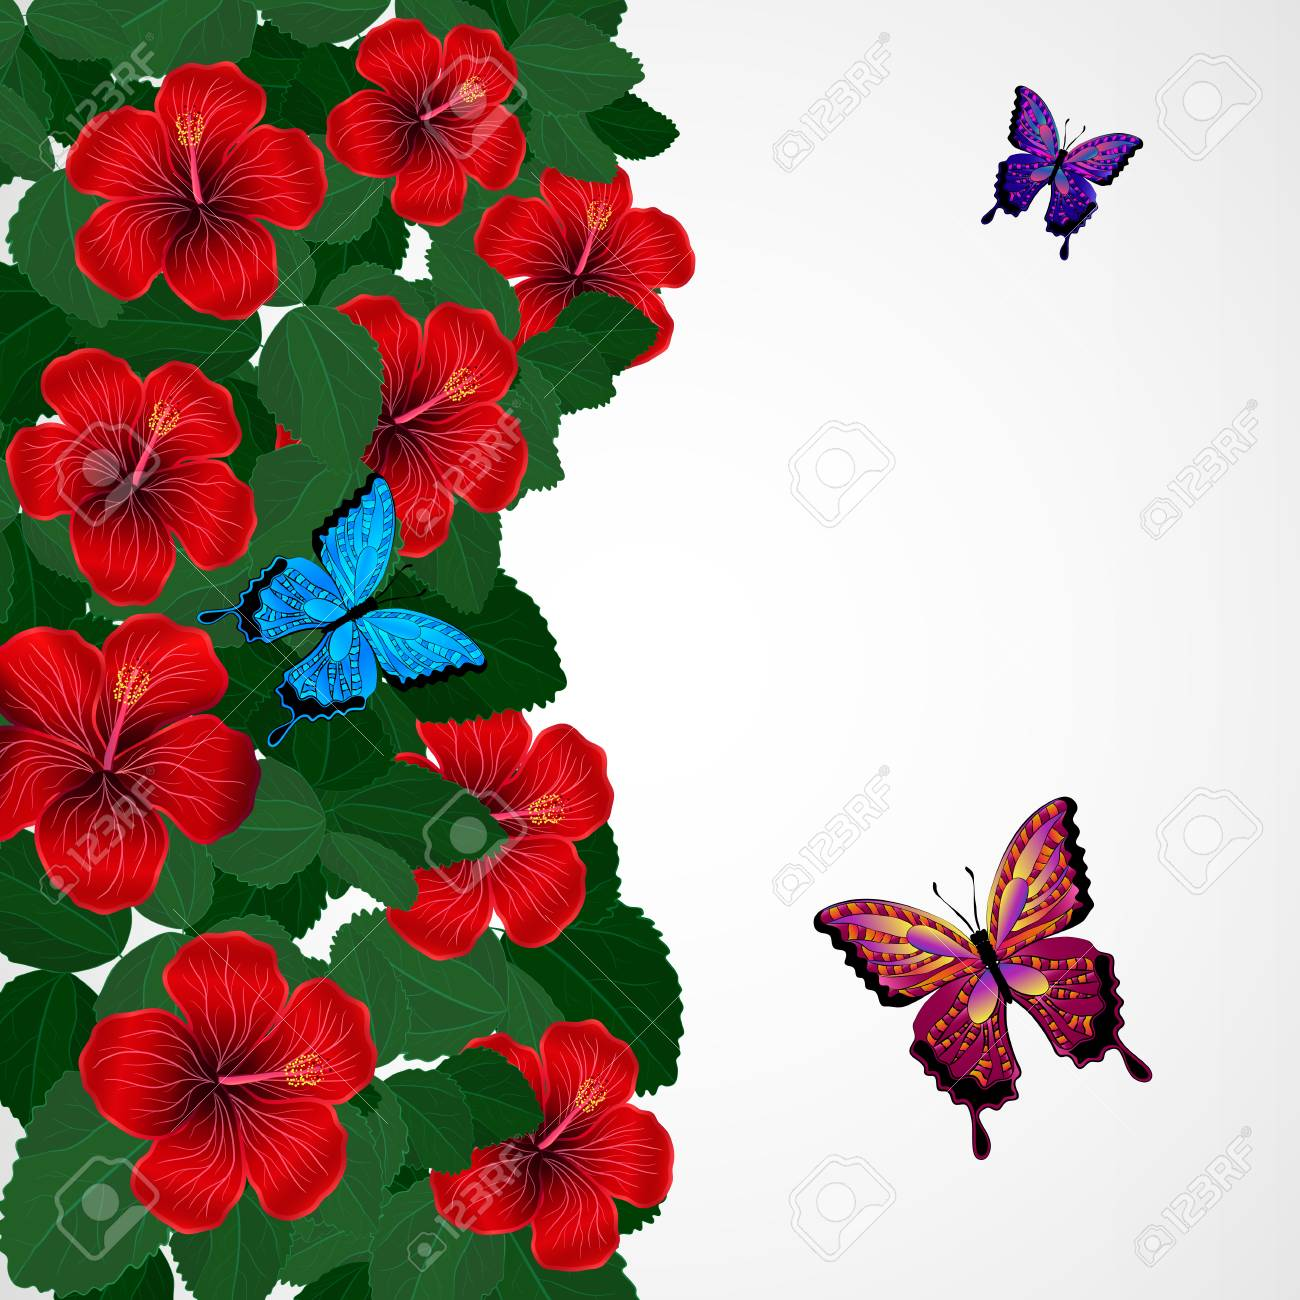 Floral Design Background Hibiscus Flowers With Butterflies Royalty